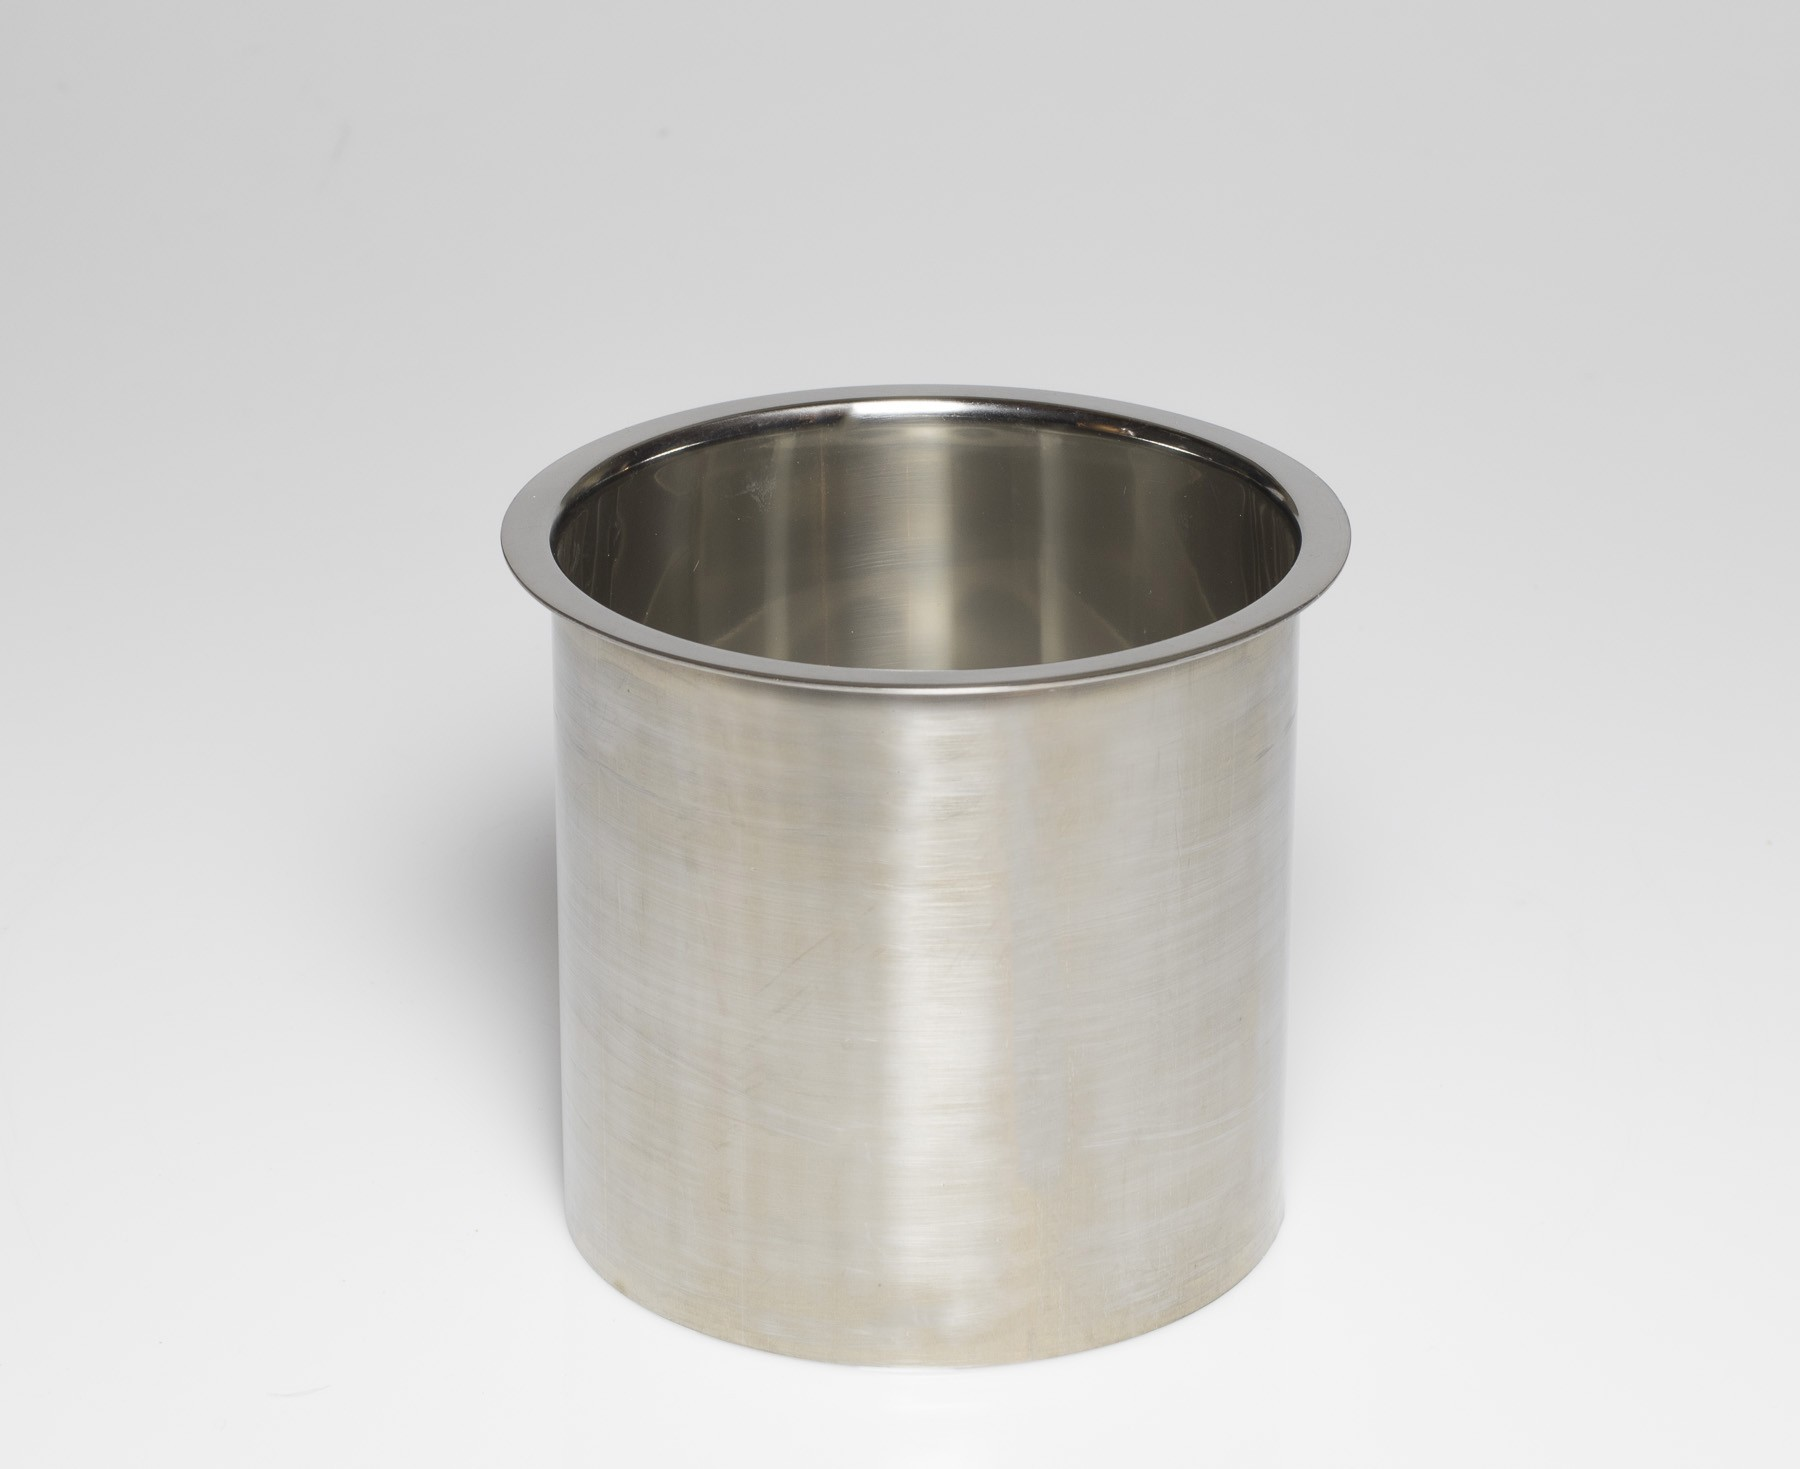 Stainless Steel Trash Ring Heavy Duty 6 Quot X 6 Quot 6143 679